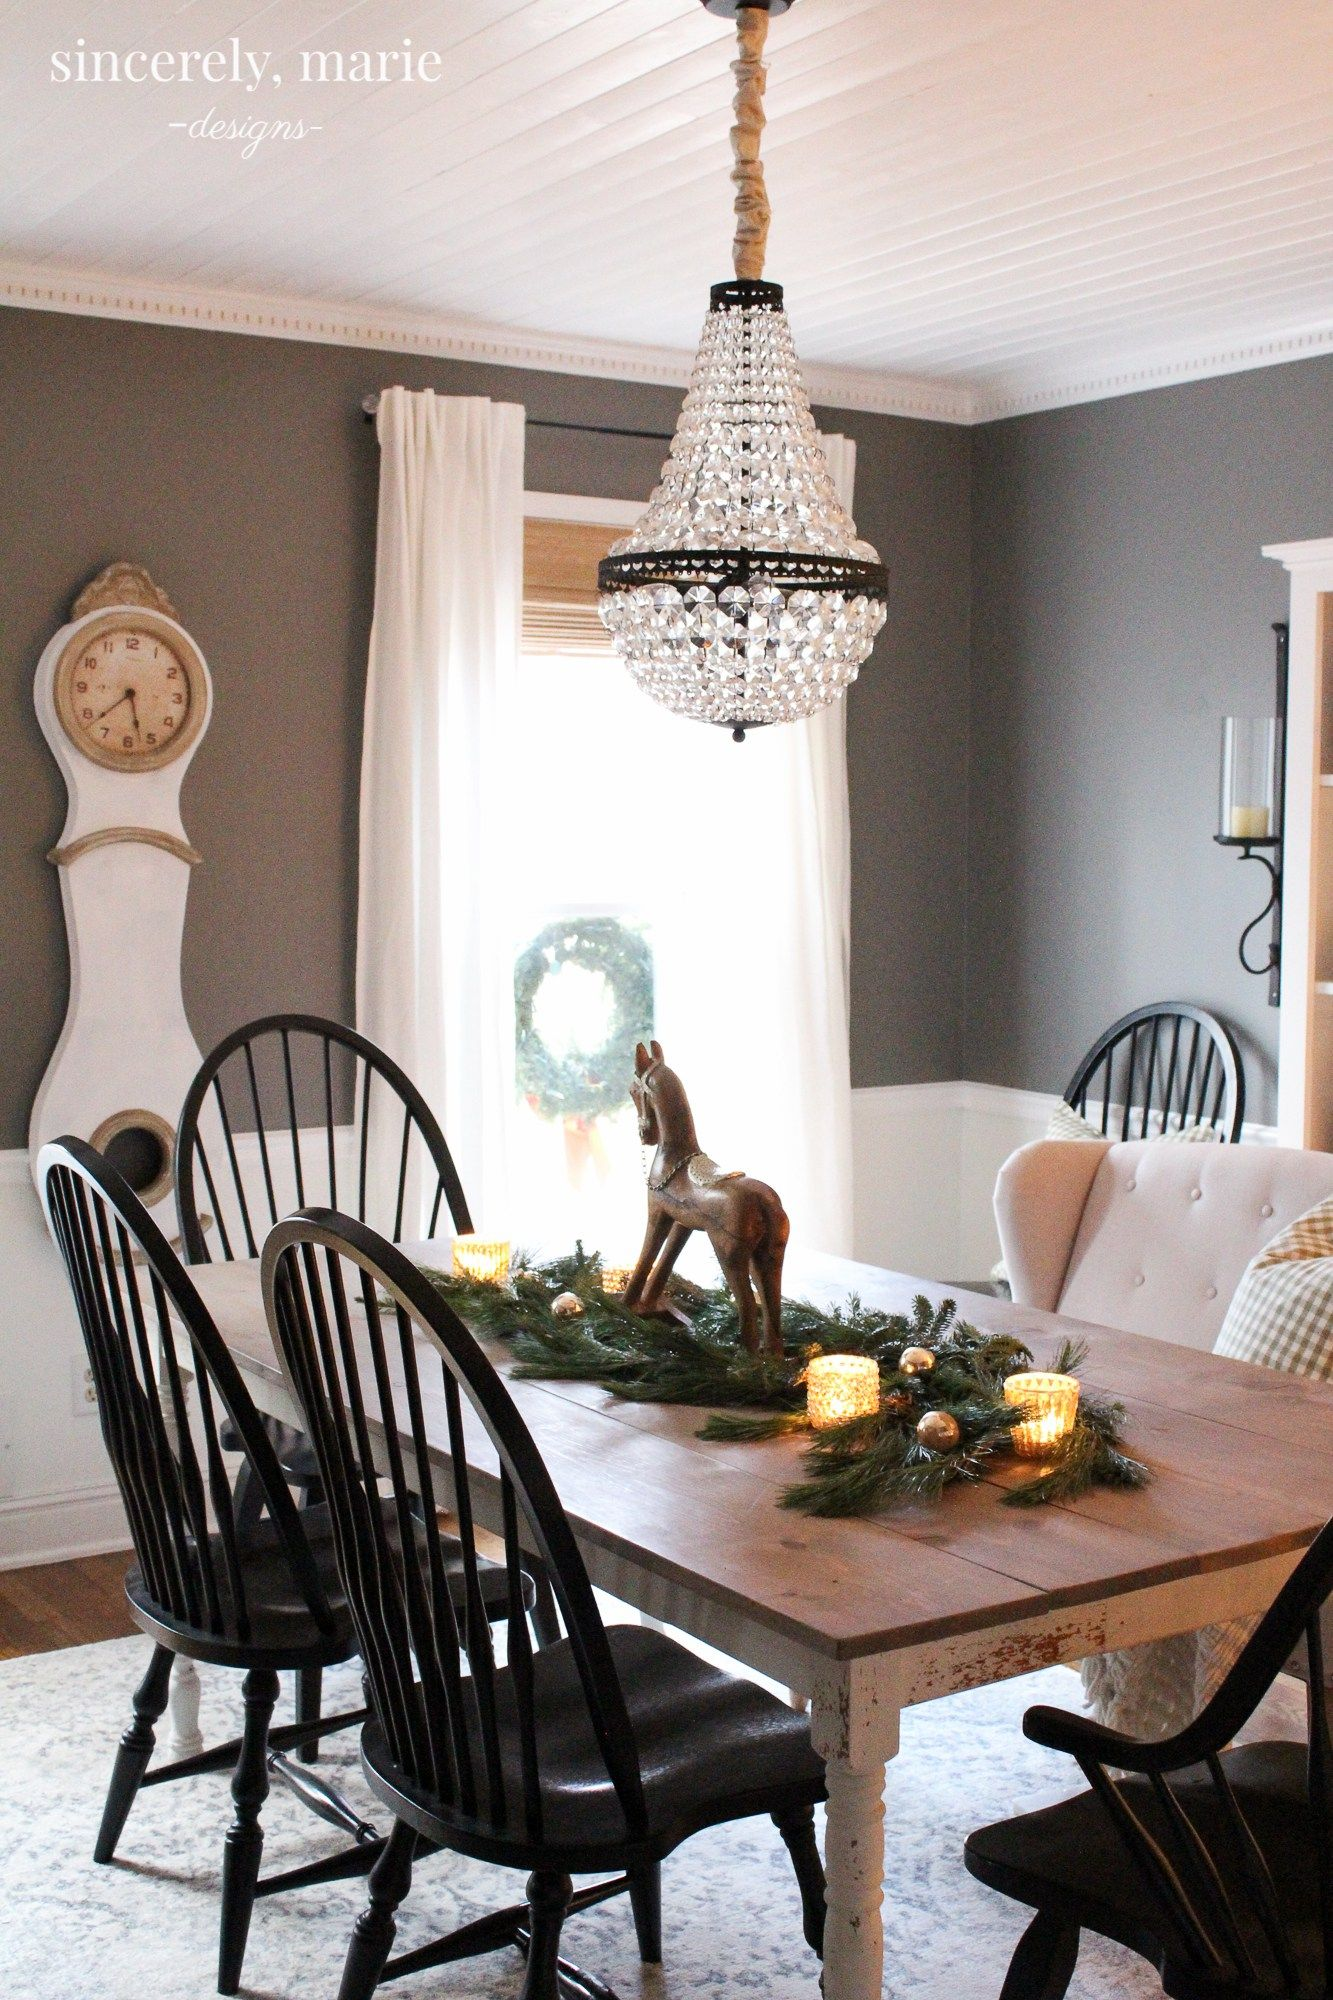 20 Modern Colonial Interior Decorating Ideas Inspired By Beautiful Colonial Homes: Home Decor, Decor, Country Farmhouse Decor